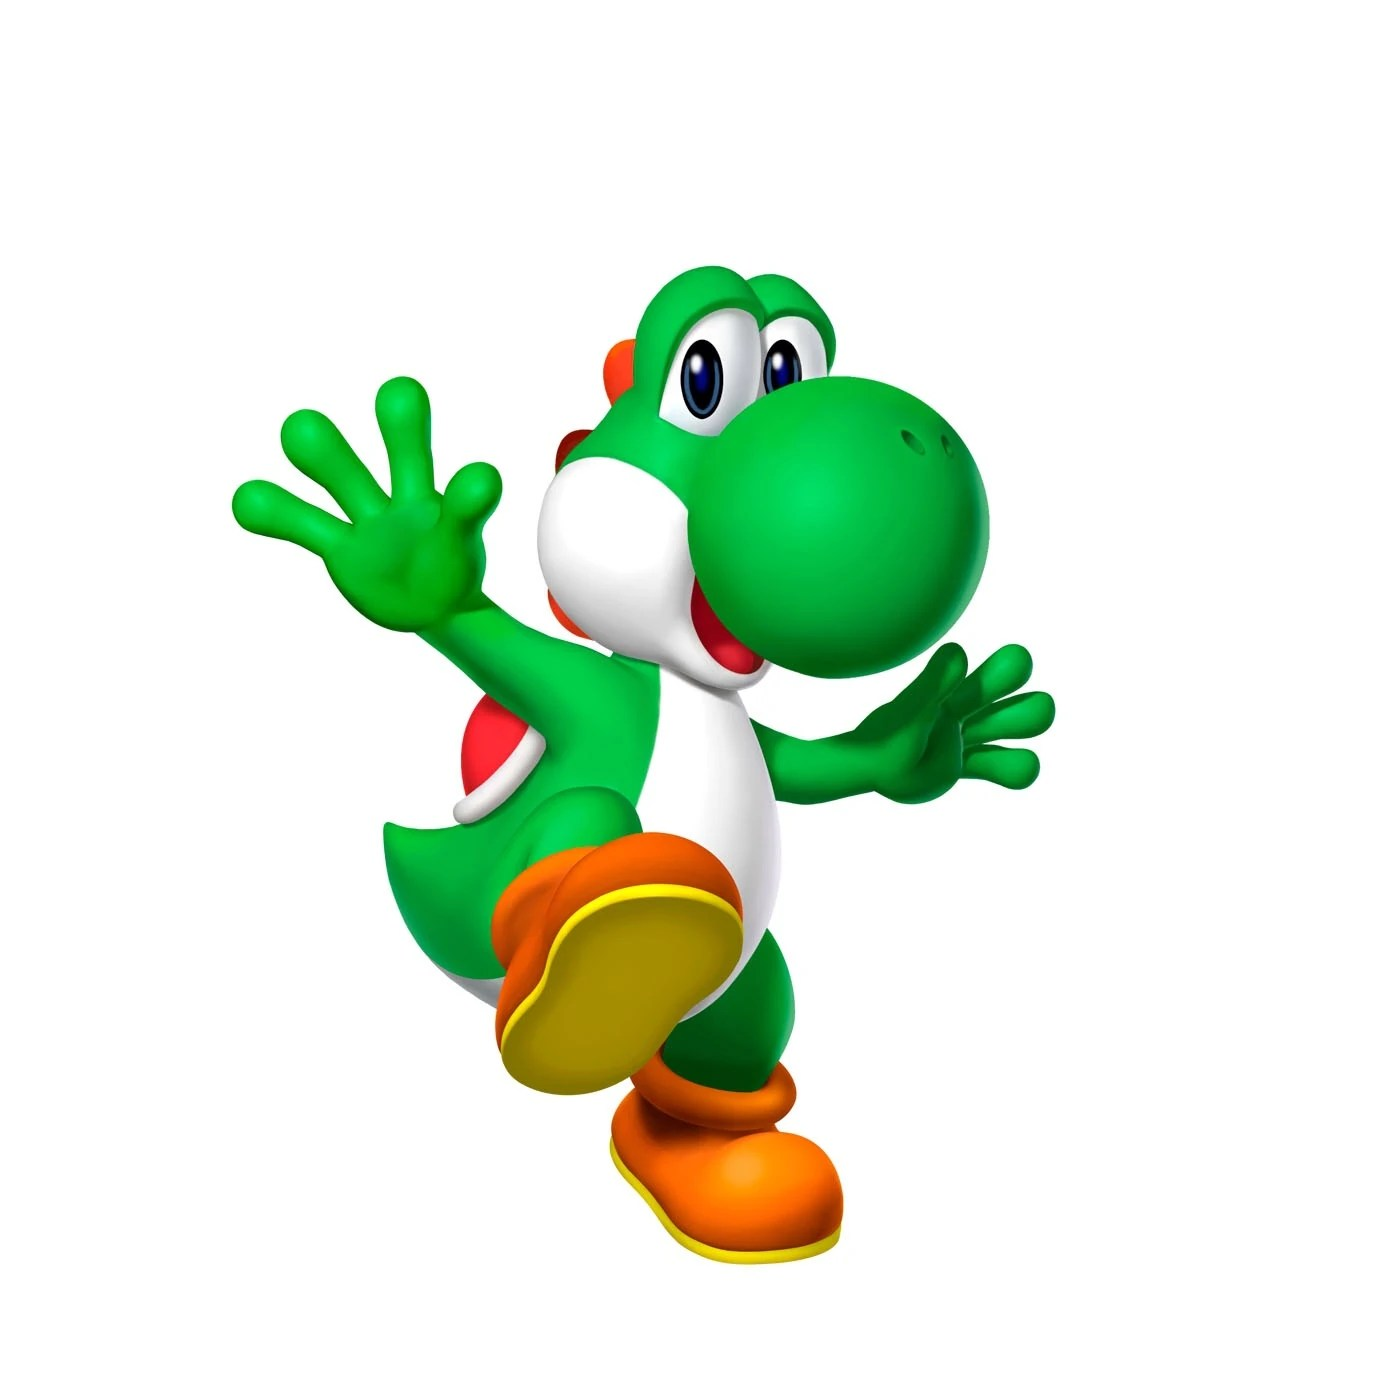 Wallpaper 3d Mario Bros Yoshi Supermarioglitchy4 Wiki Fandom Powered By Wikia